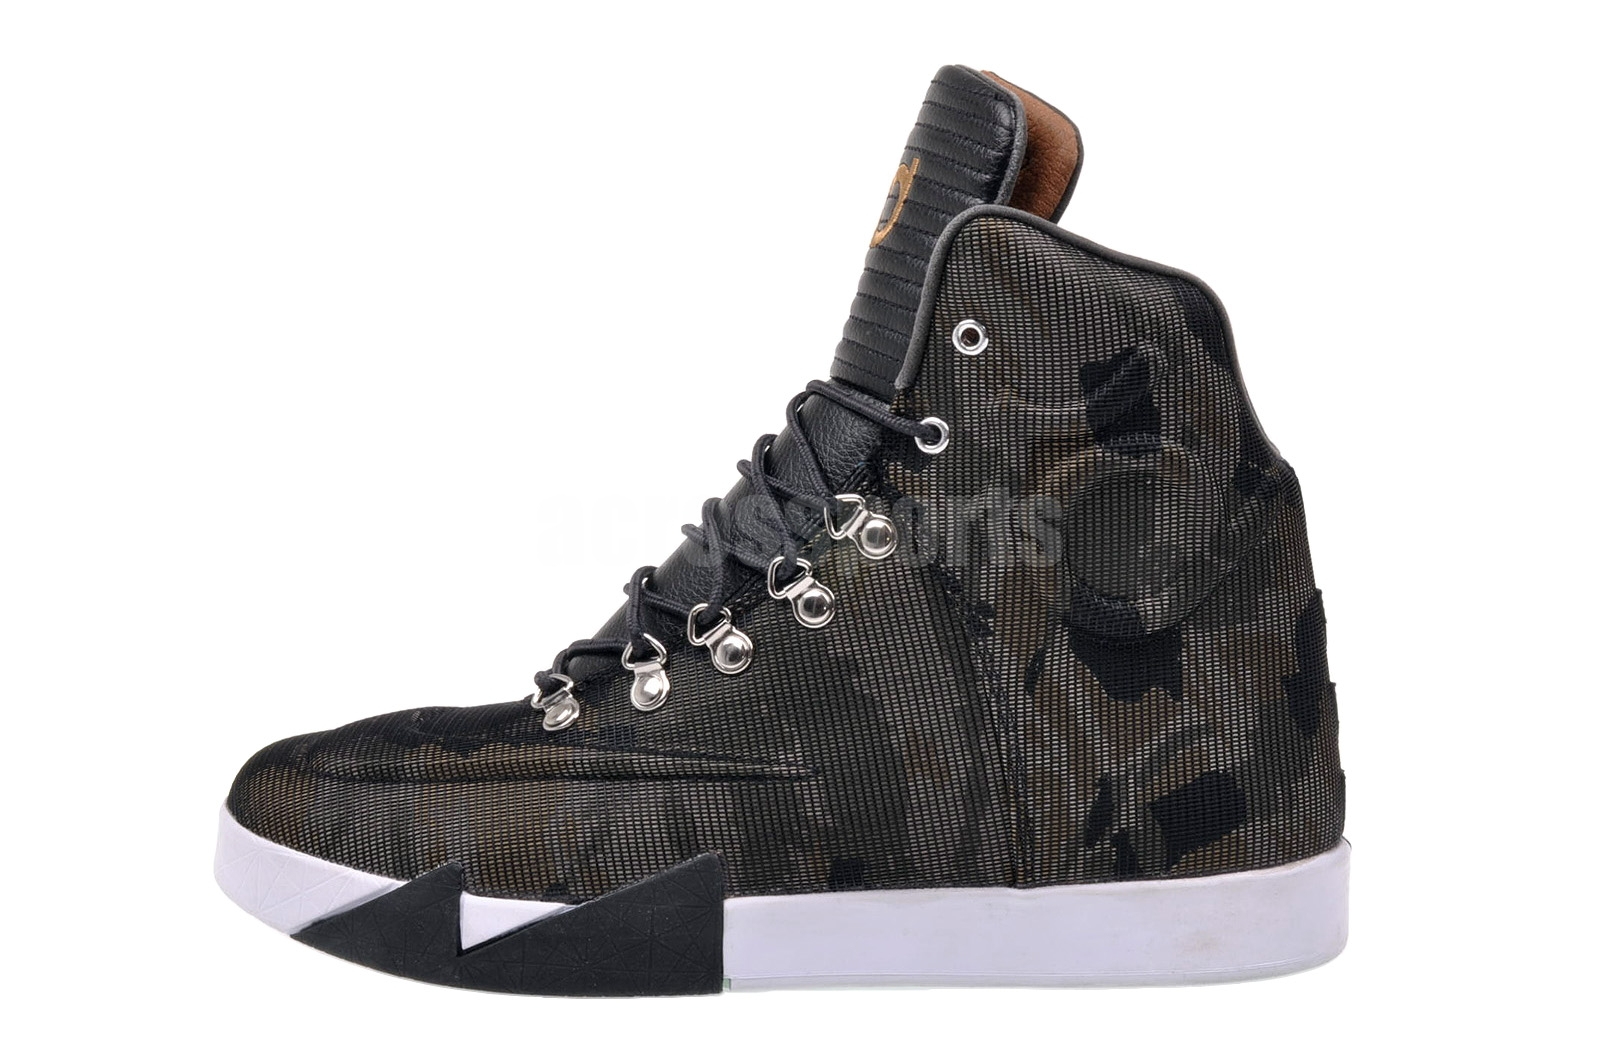 nike kd vi nsw lifestyle qs camo kevin durant casual shoes